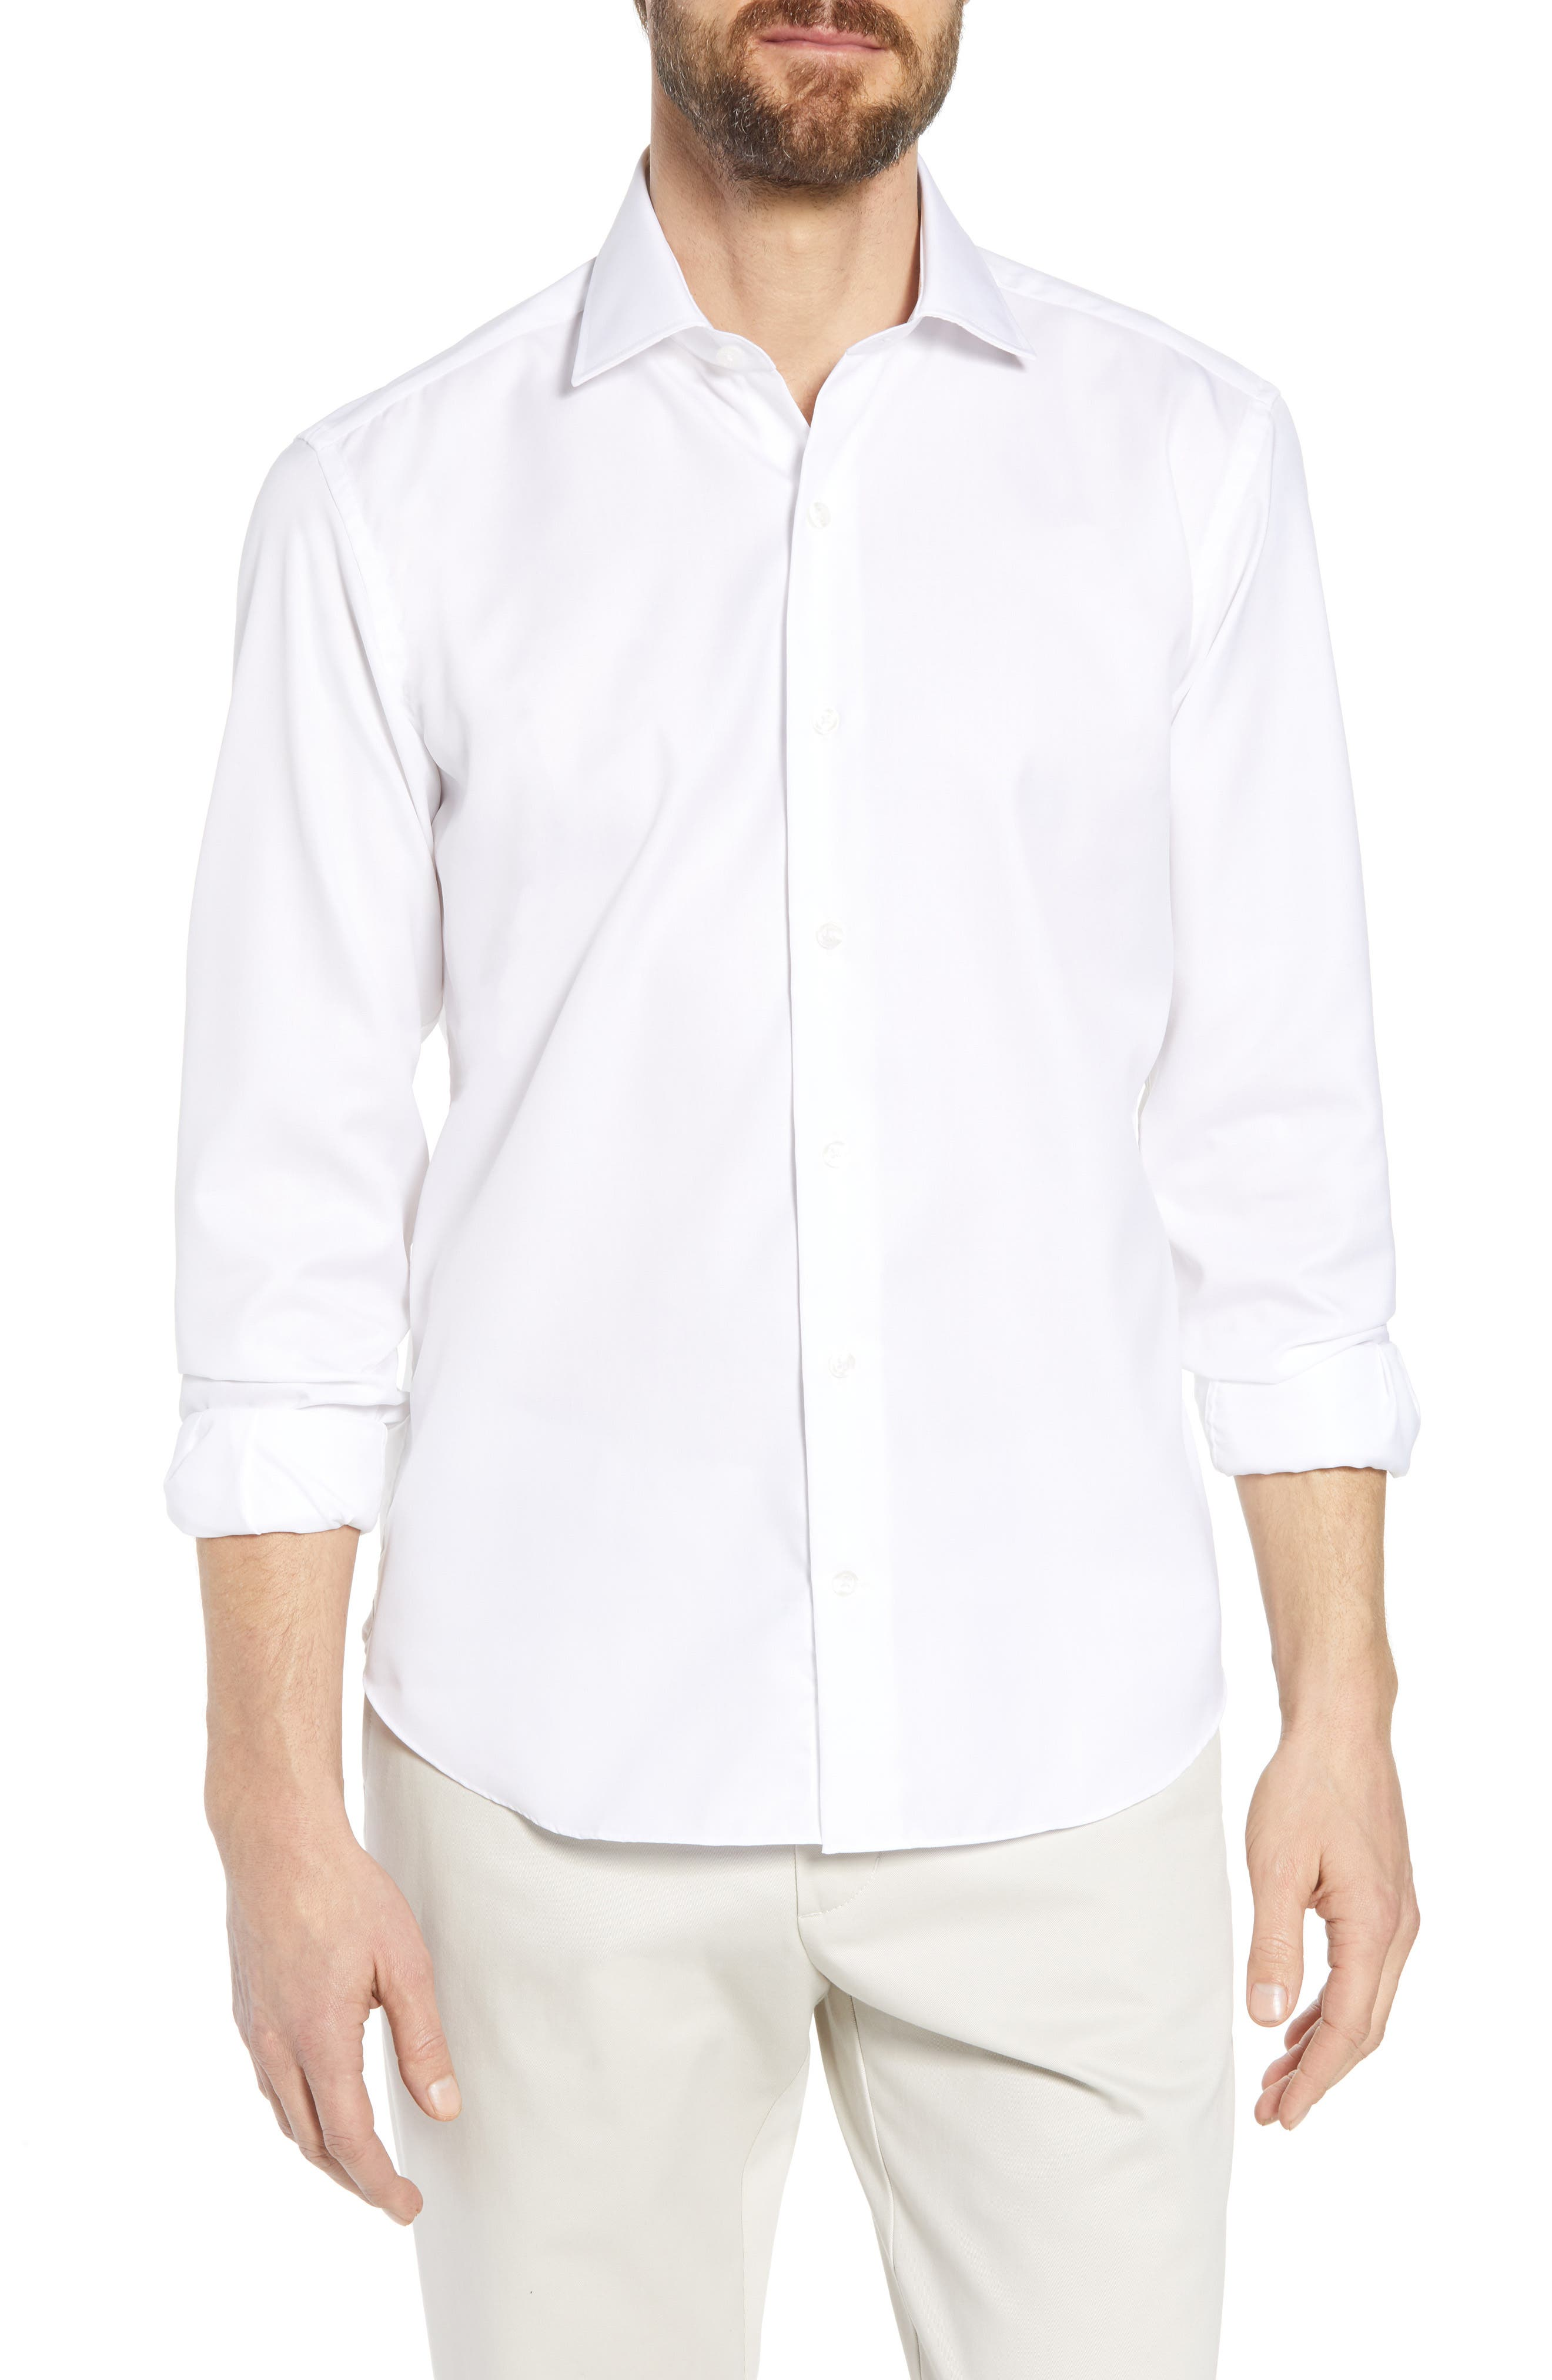 Crease Free Extra Soft Sport Shirt,                             Main thumbnail 1, color,                             White